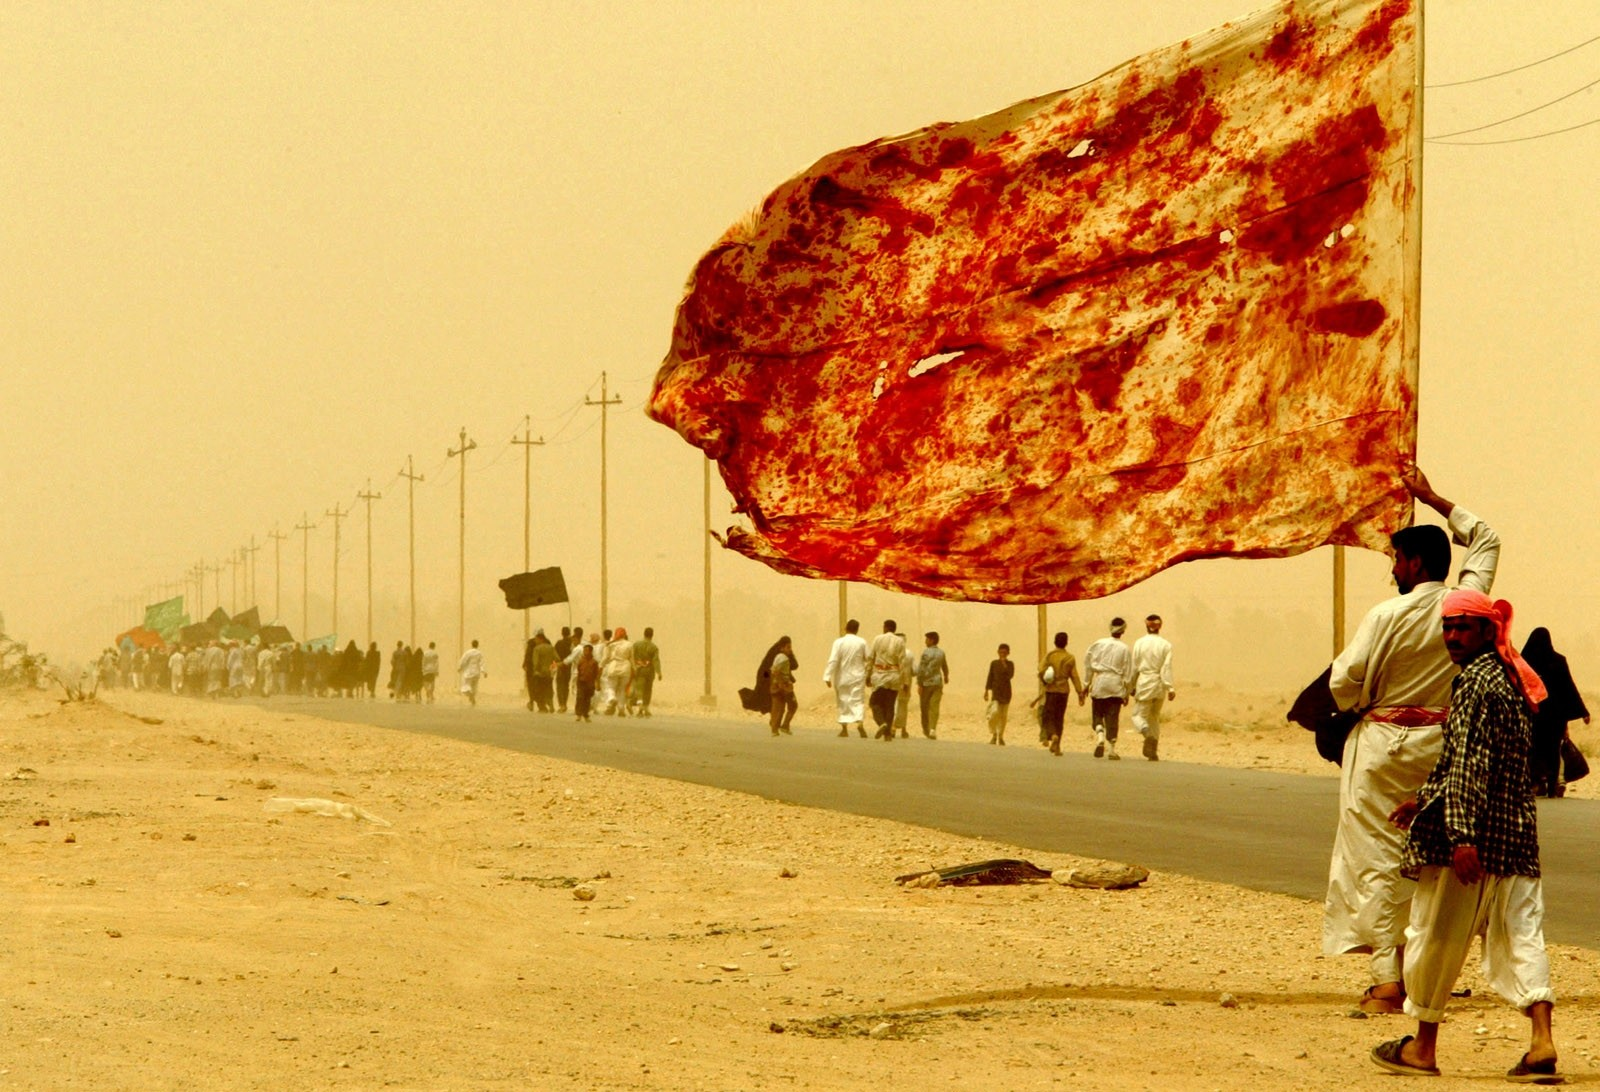 Yannis Behrakis: An award-winning photographer, who covered the most tumultuous events around the world